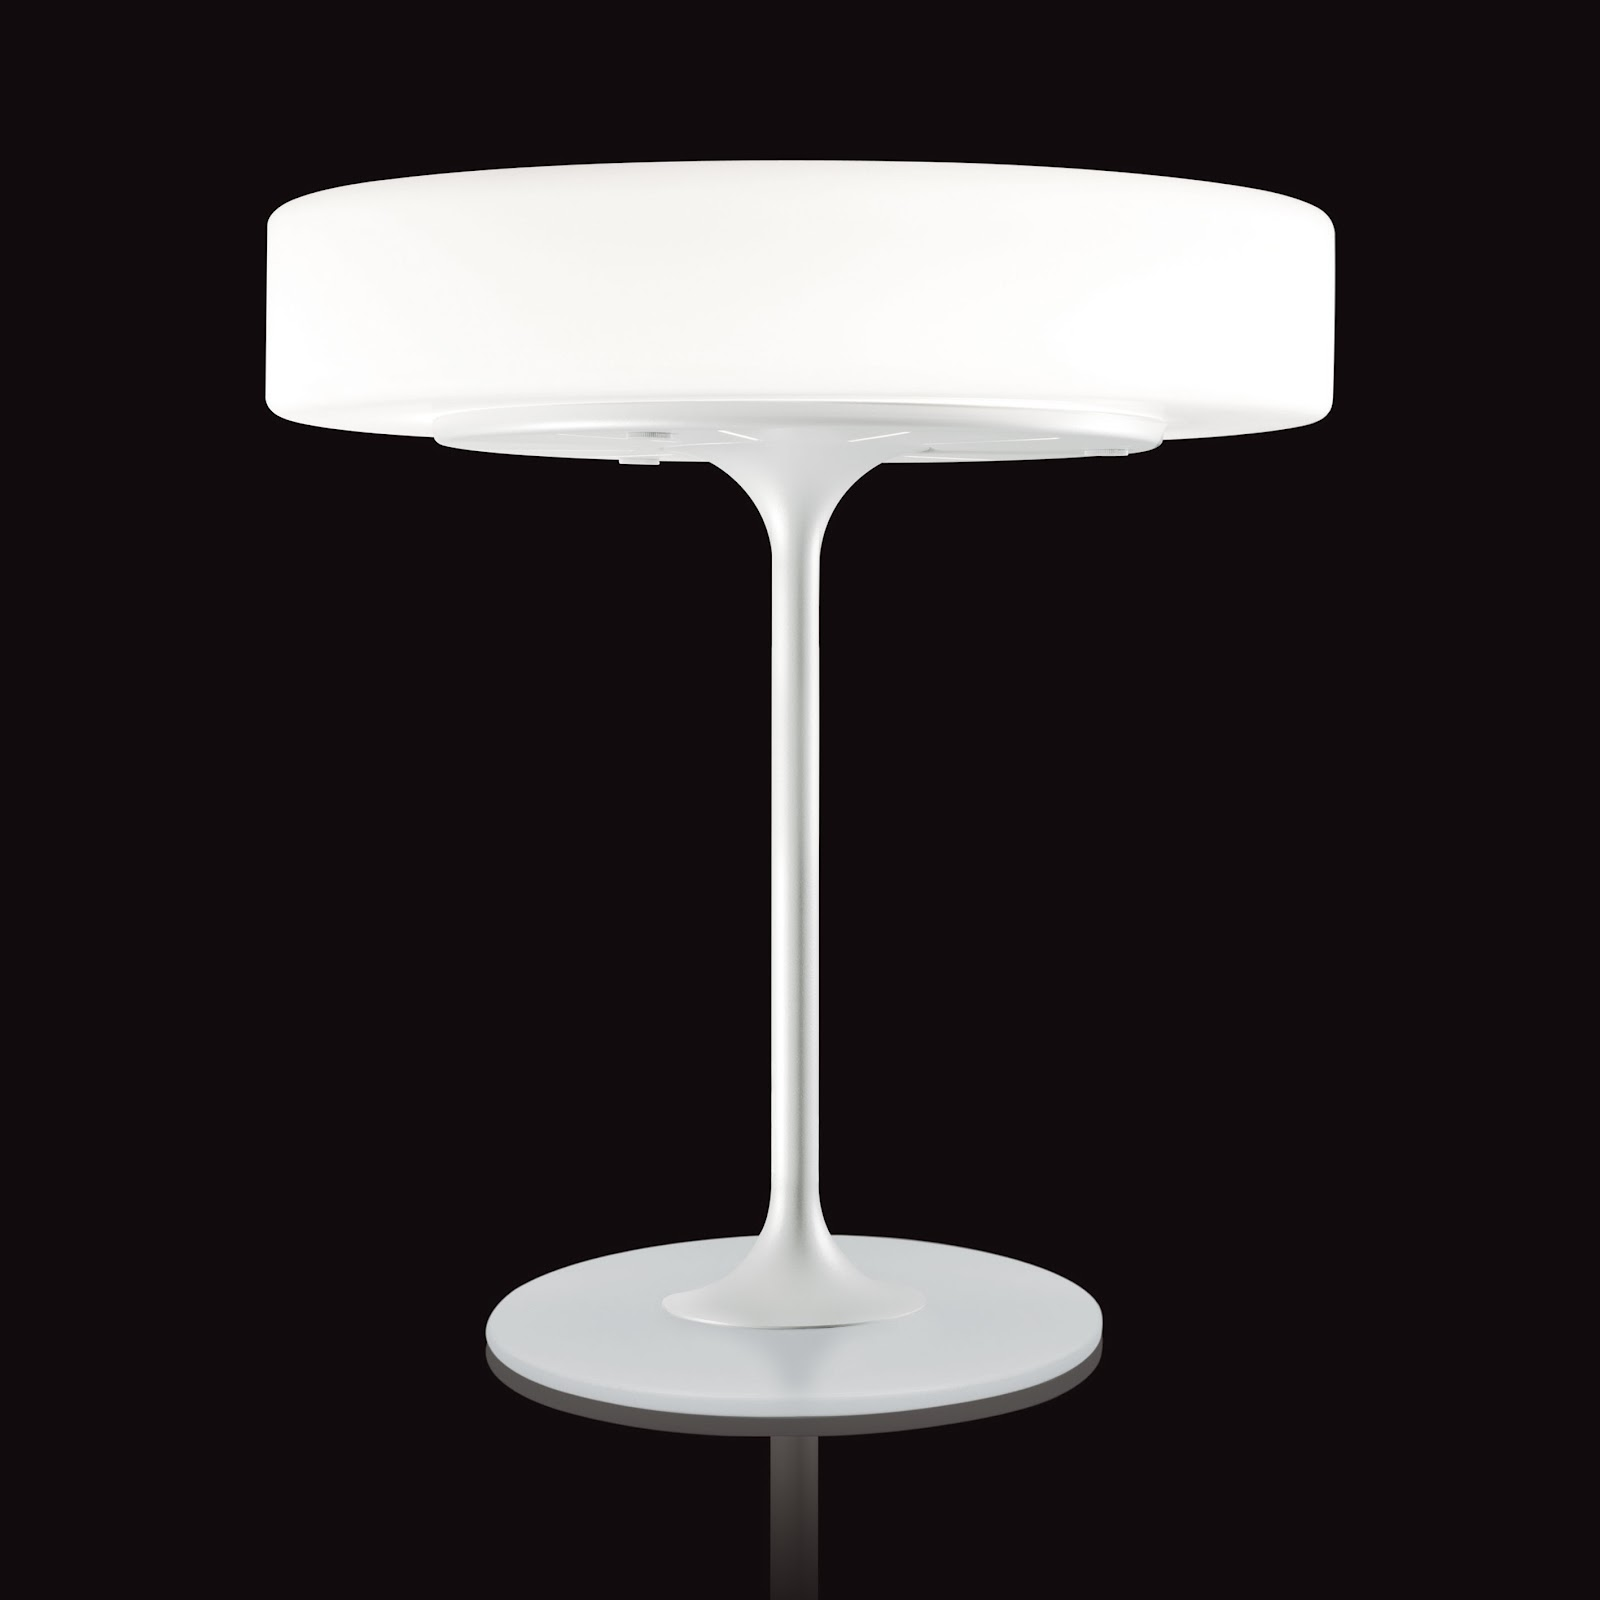 Charmant Minimal Modern Table Lamp With Tulip Base And White Glass Disc Shape    Glass Modern Table Lamp